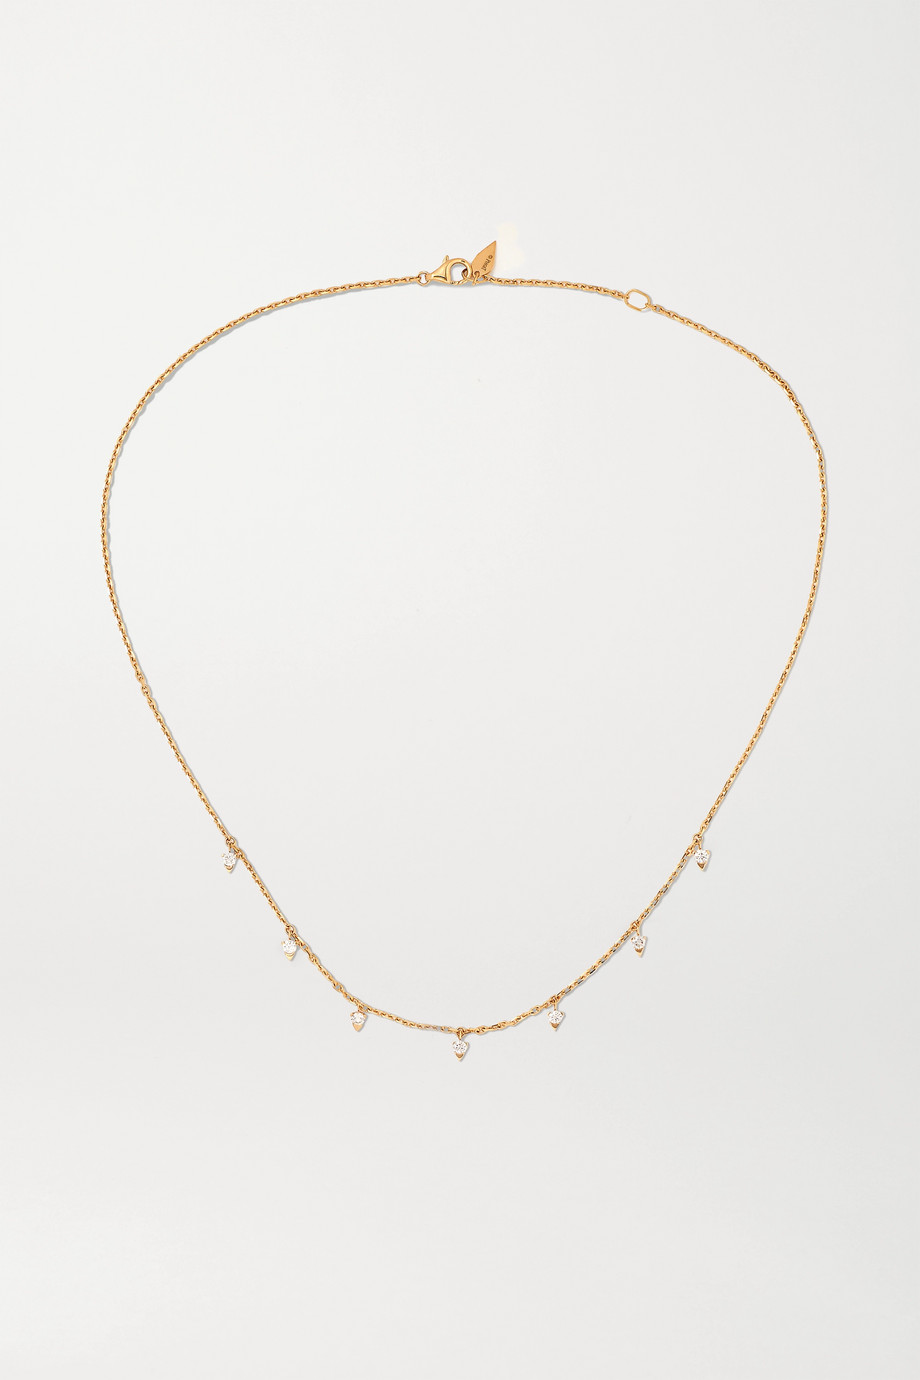 Piaget Sunlight 18-karat rose gold diamond necklace